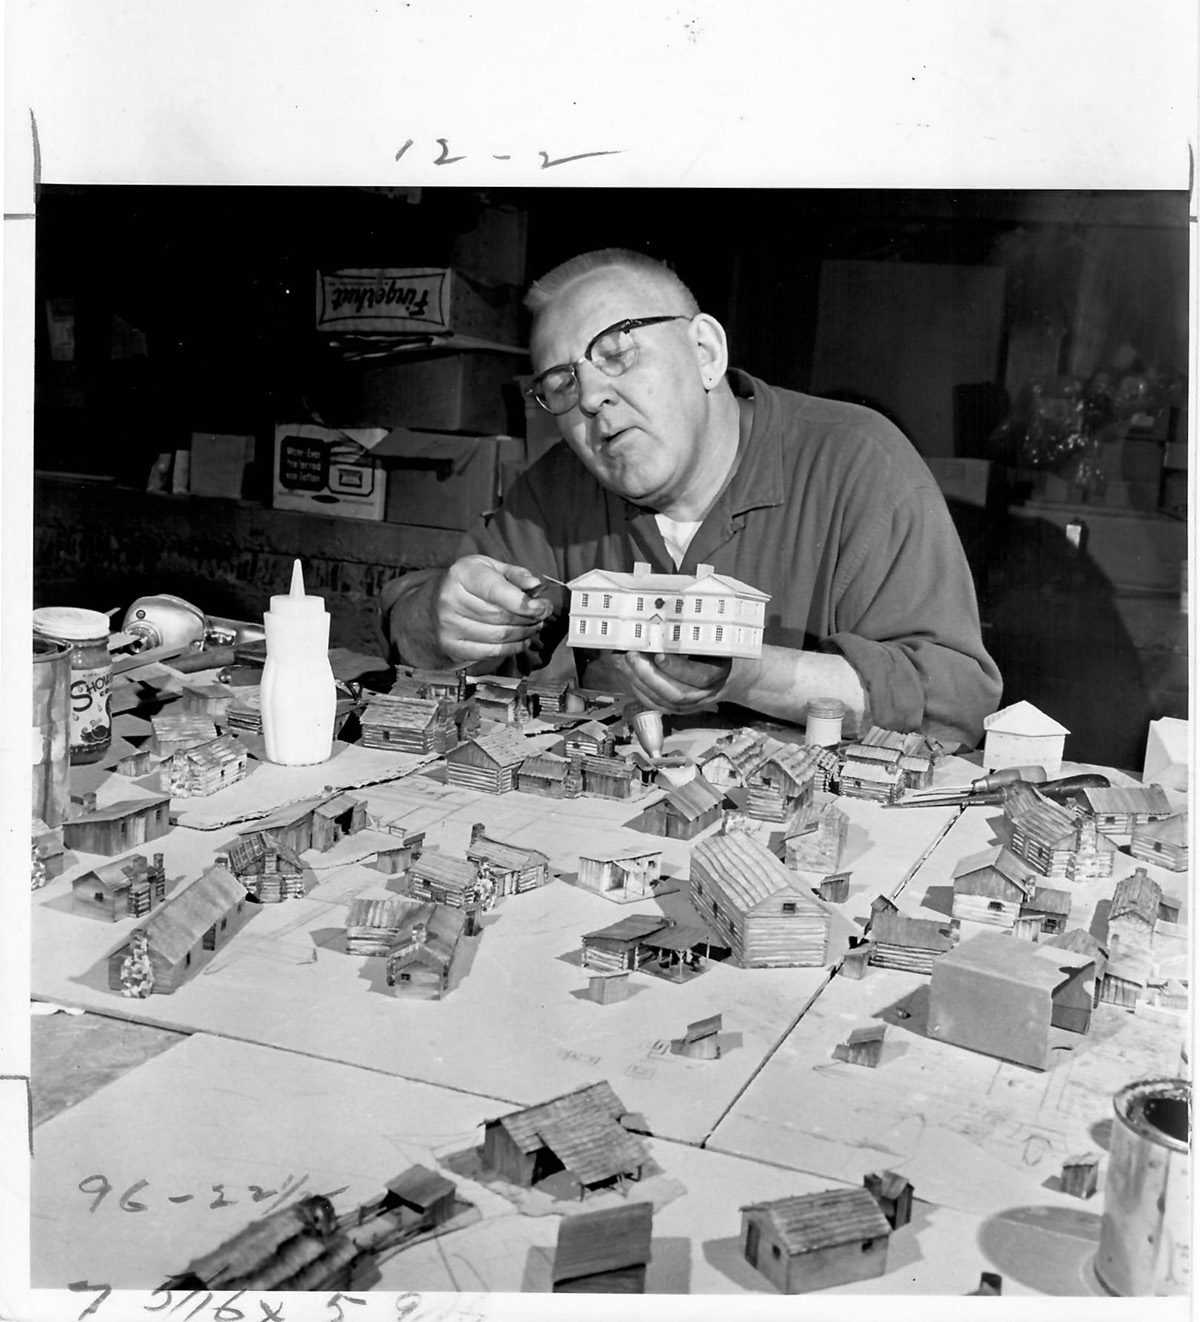 Robert Latta, of Holiday Designs, trims the commandant's home for the Fort Pitt diorama, June 8, 1969. Copyright © Pittsburgh Post-Gazette, 2019.